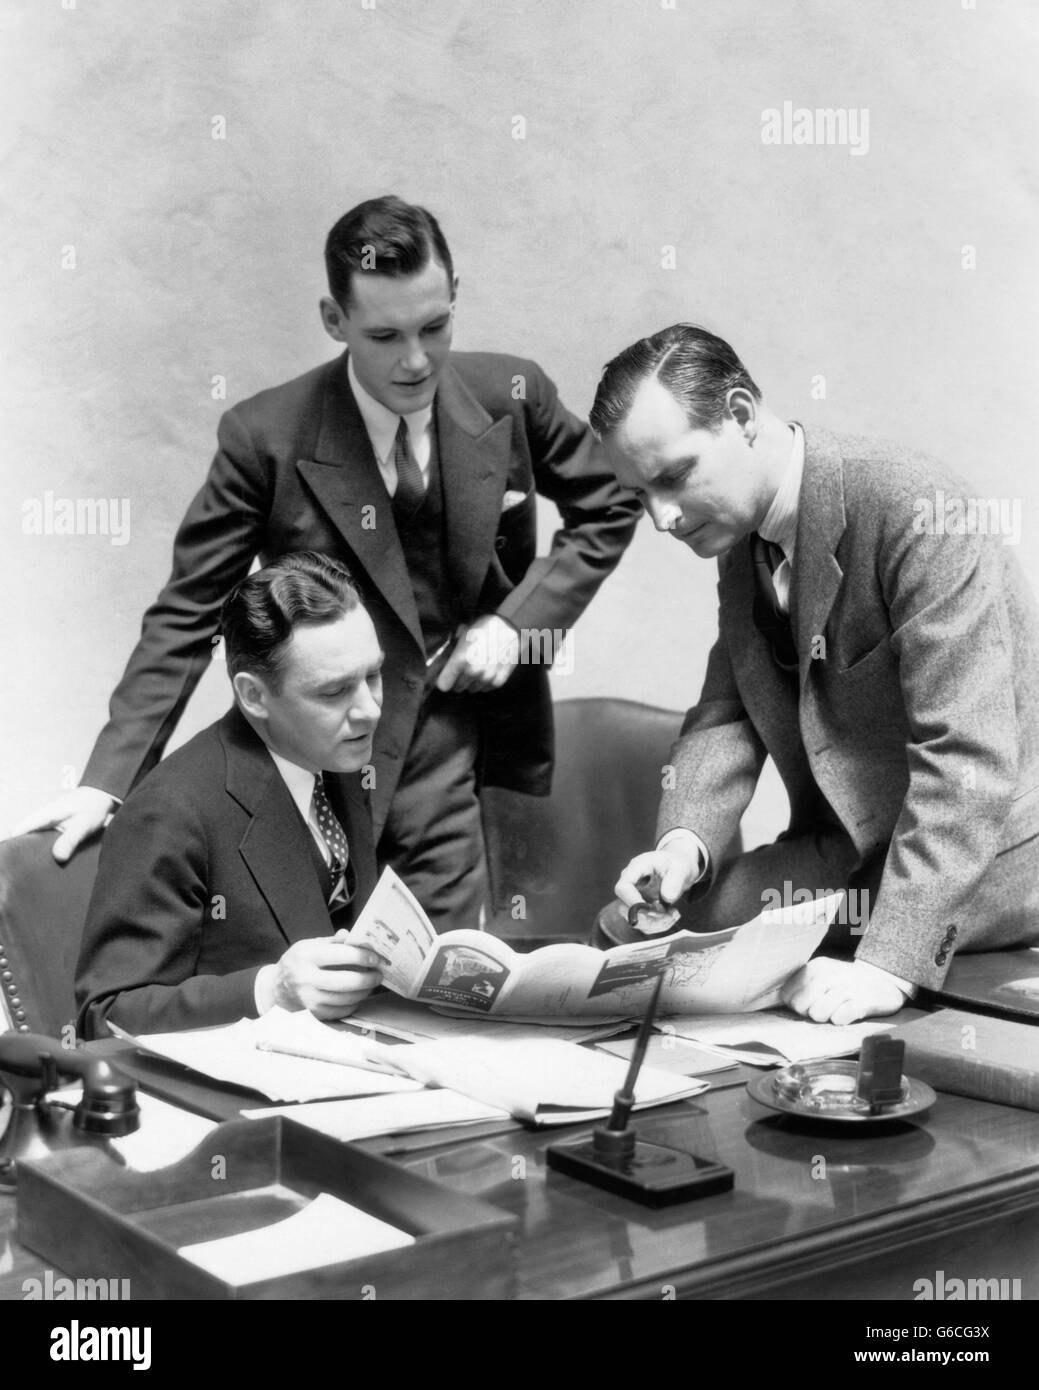 1930s THREE MEN AT DESK IN OFFICE LOOKING AT BROCHURE - Stock Image